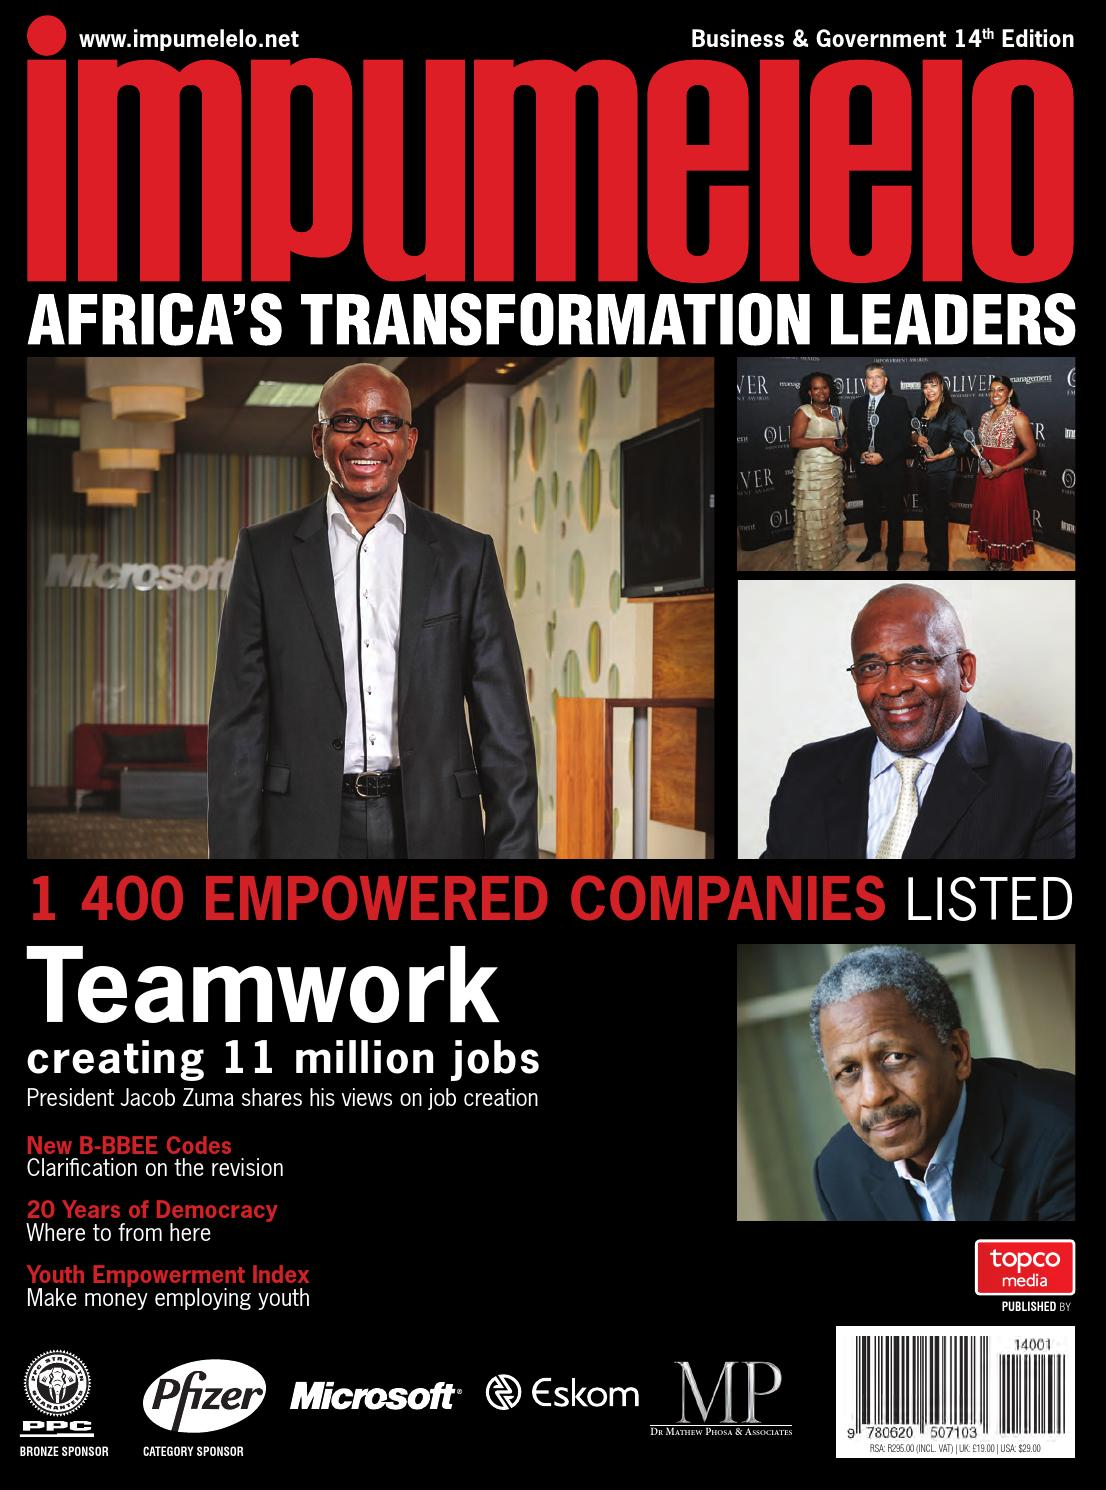 Impumelelo 14th Edition by Topco Media - issuu